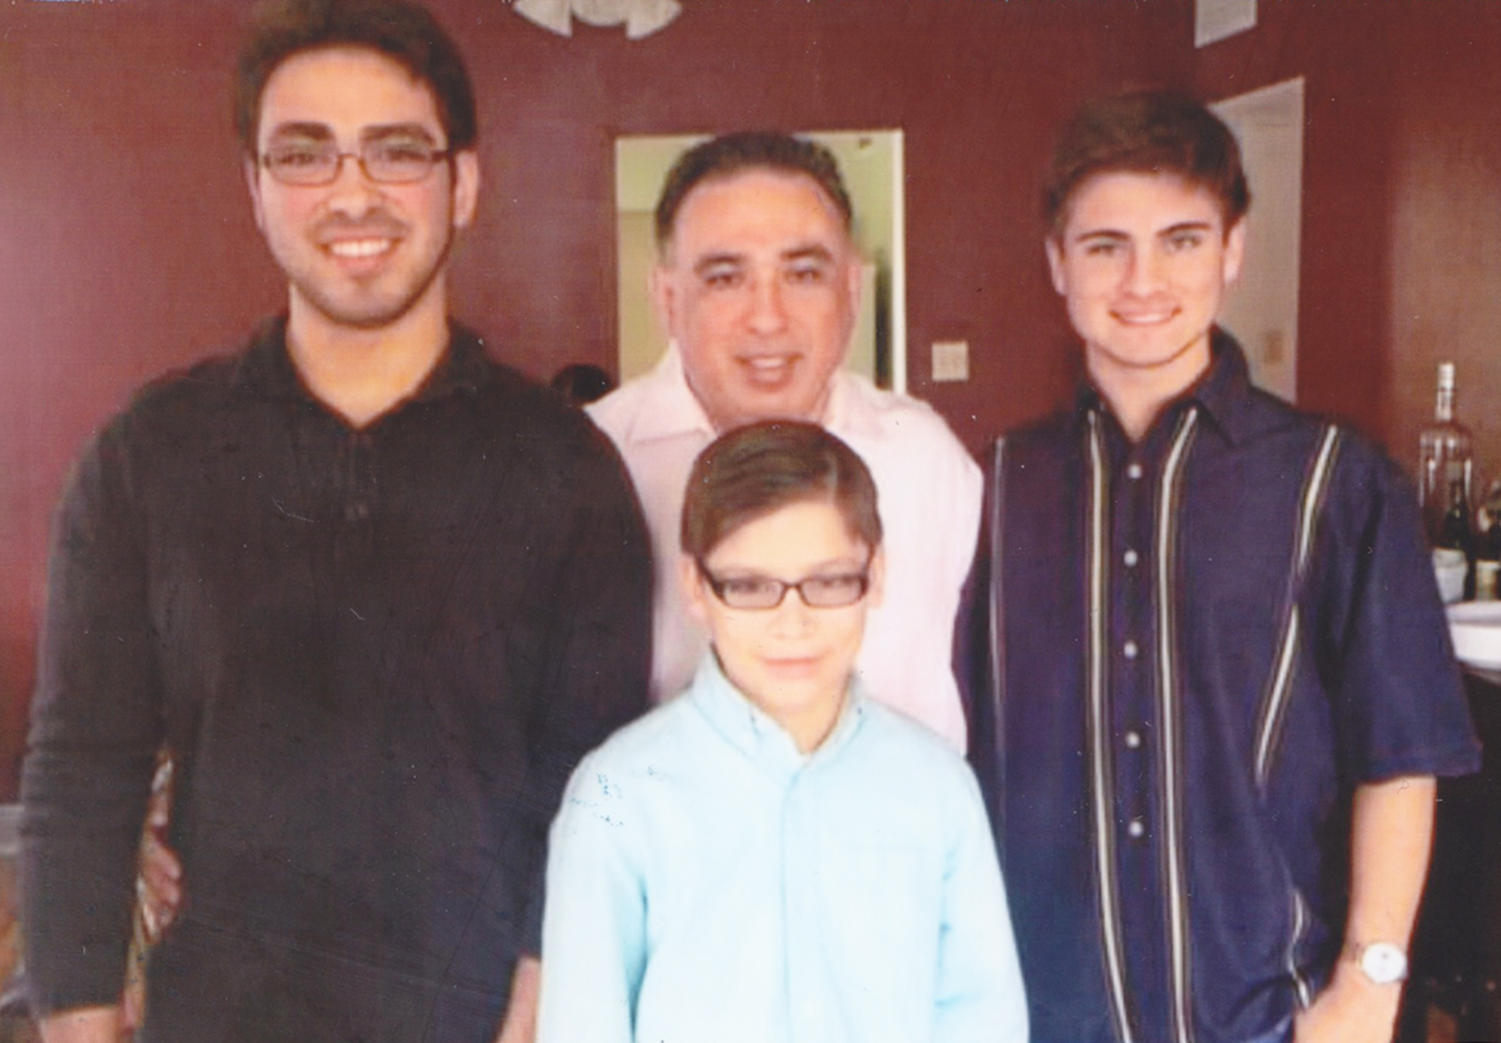 Andres Fuentes (left), Alejandro Fuentes (bottom center), Armando Fuentes (right) and Cesar Fuentes (middle) enjoying quality family moments Thanksgiving, 2014. Fuentes is proud to be Hispanic. Courtesy of Andres Fuentes. Photo credit: Andres Fuentes